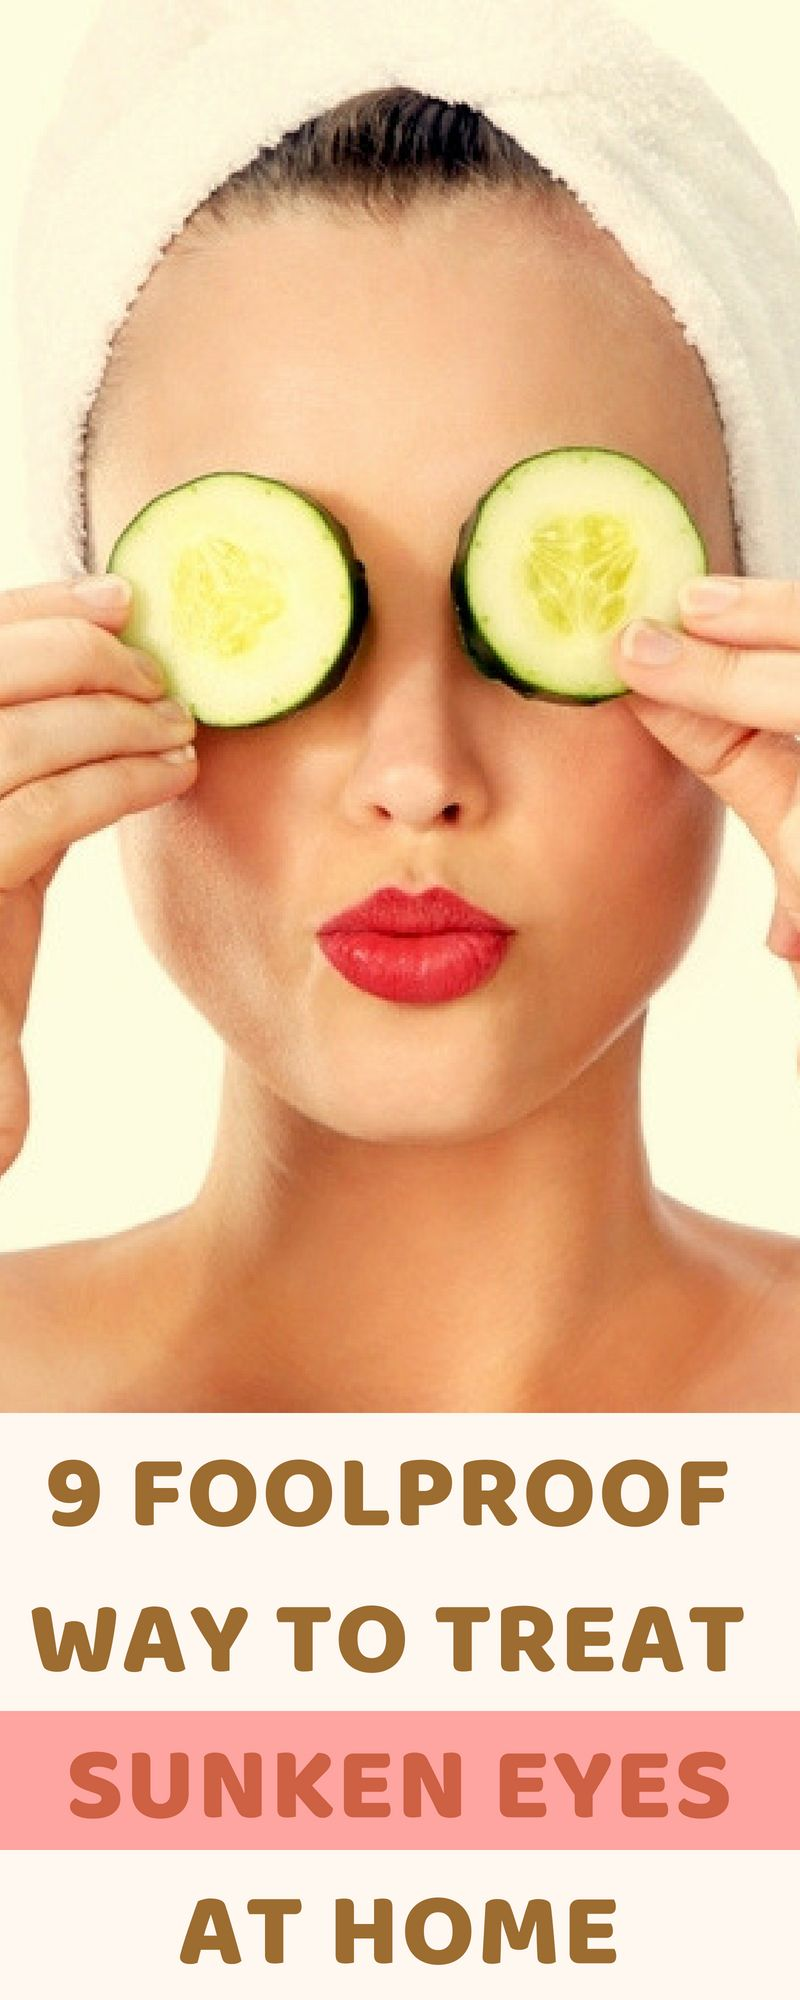 9 foolproof home remedies for sunken eyes with easily